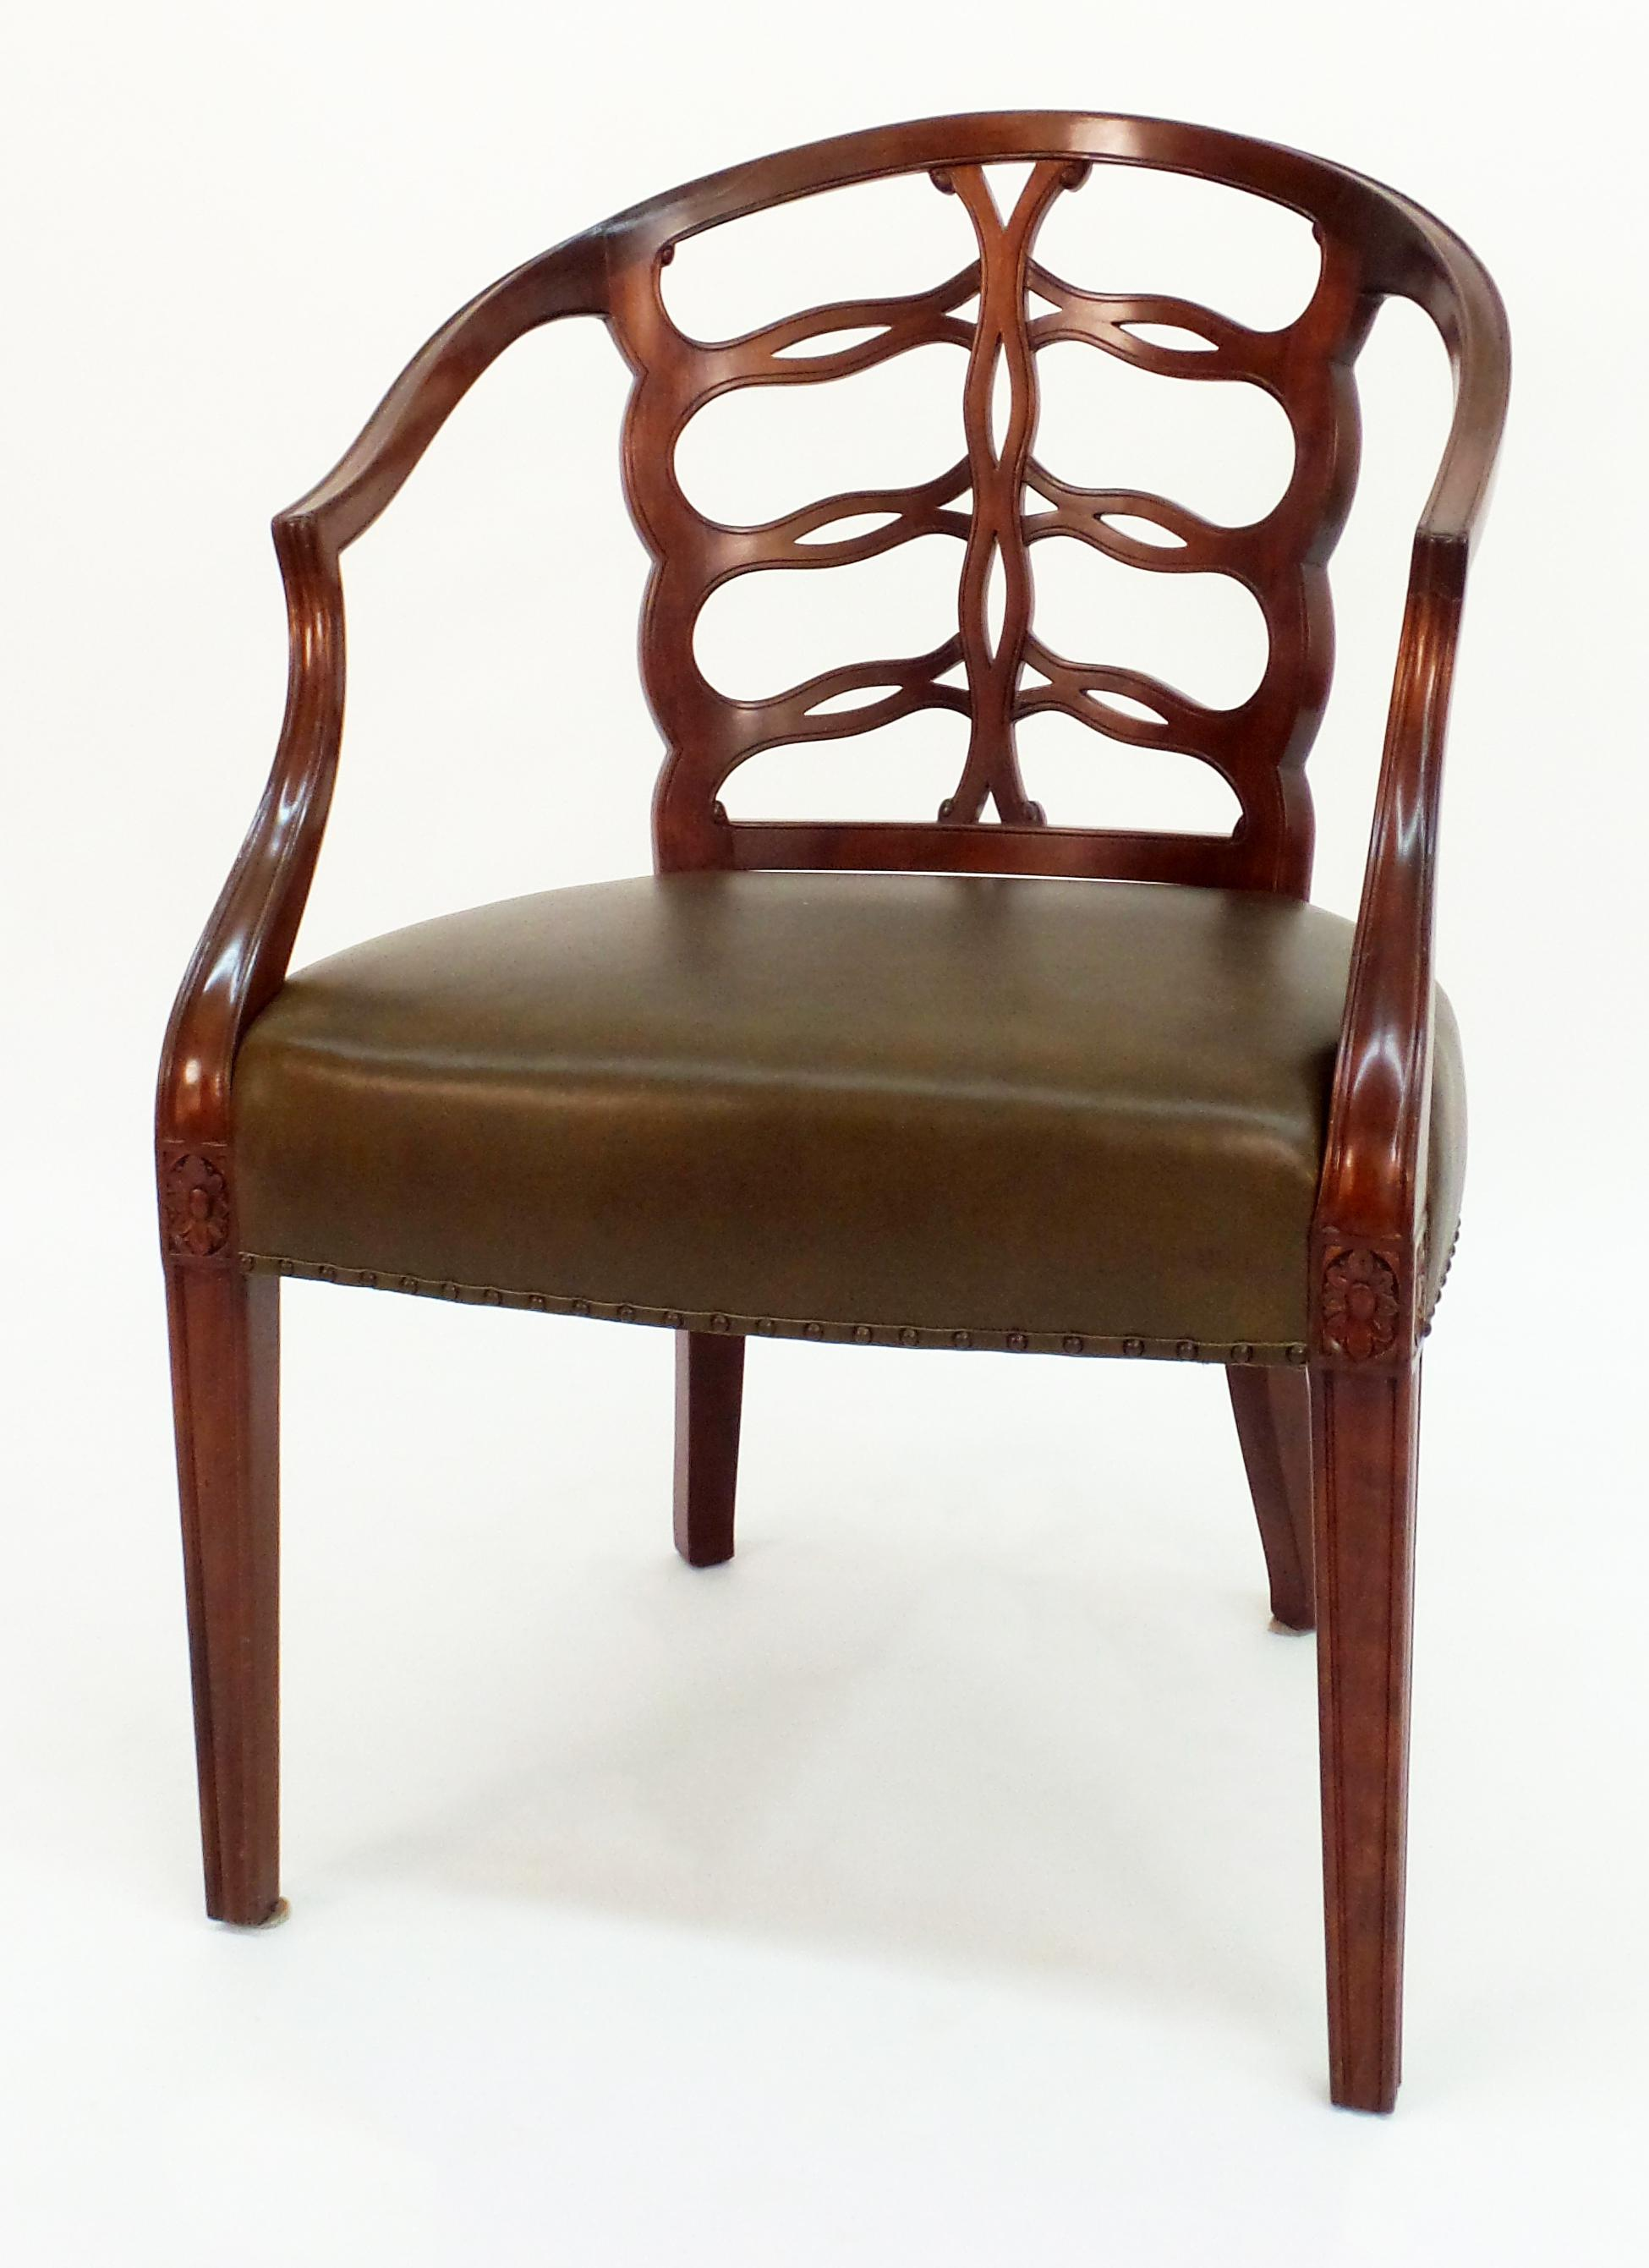 Hepplewhite Carved Open Back Chair For Sale   Image 3 Of 5